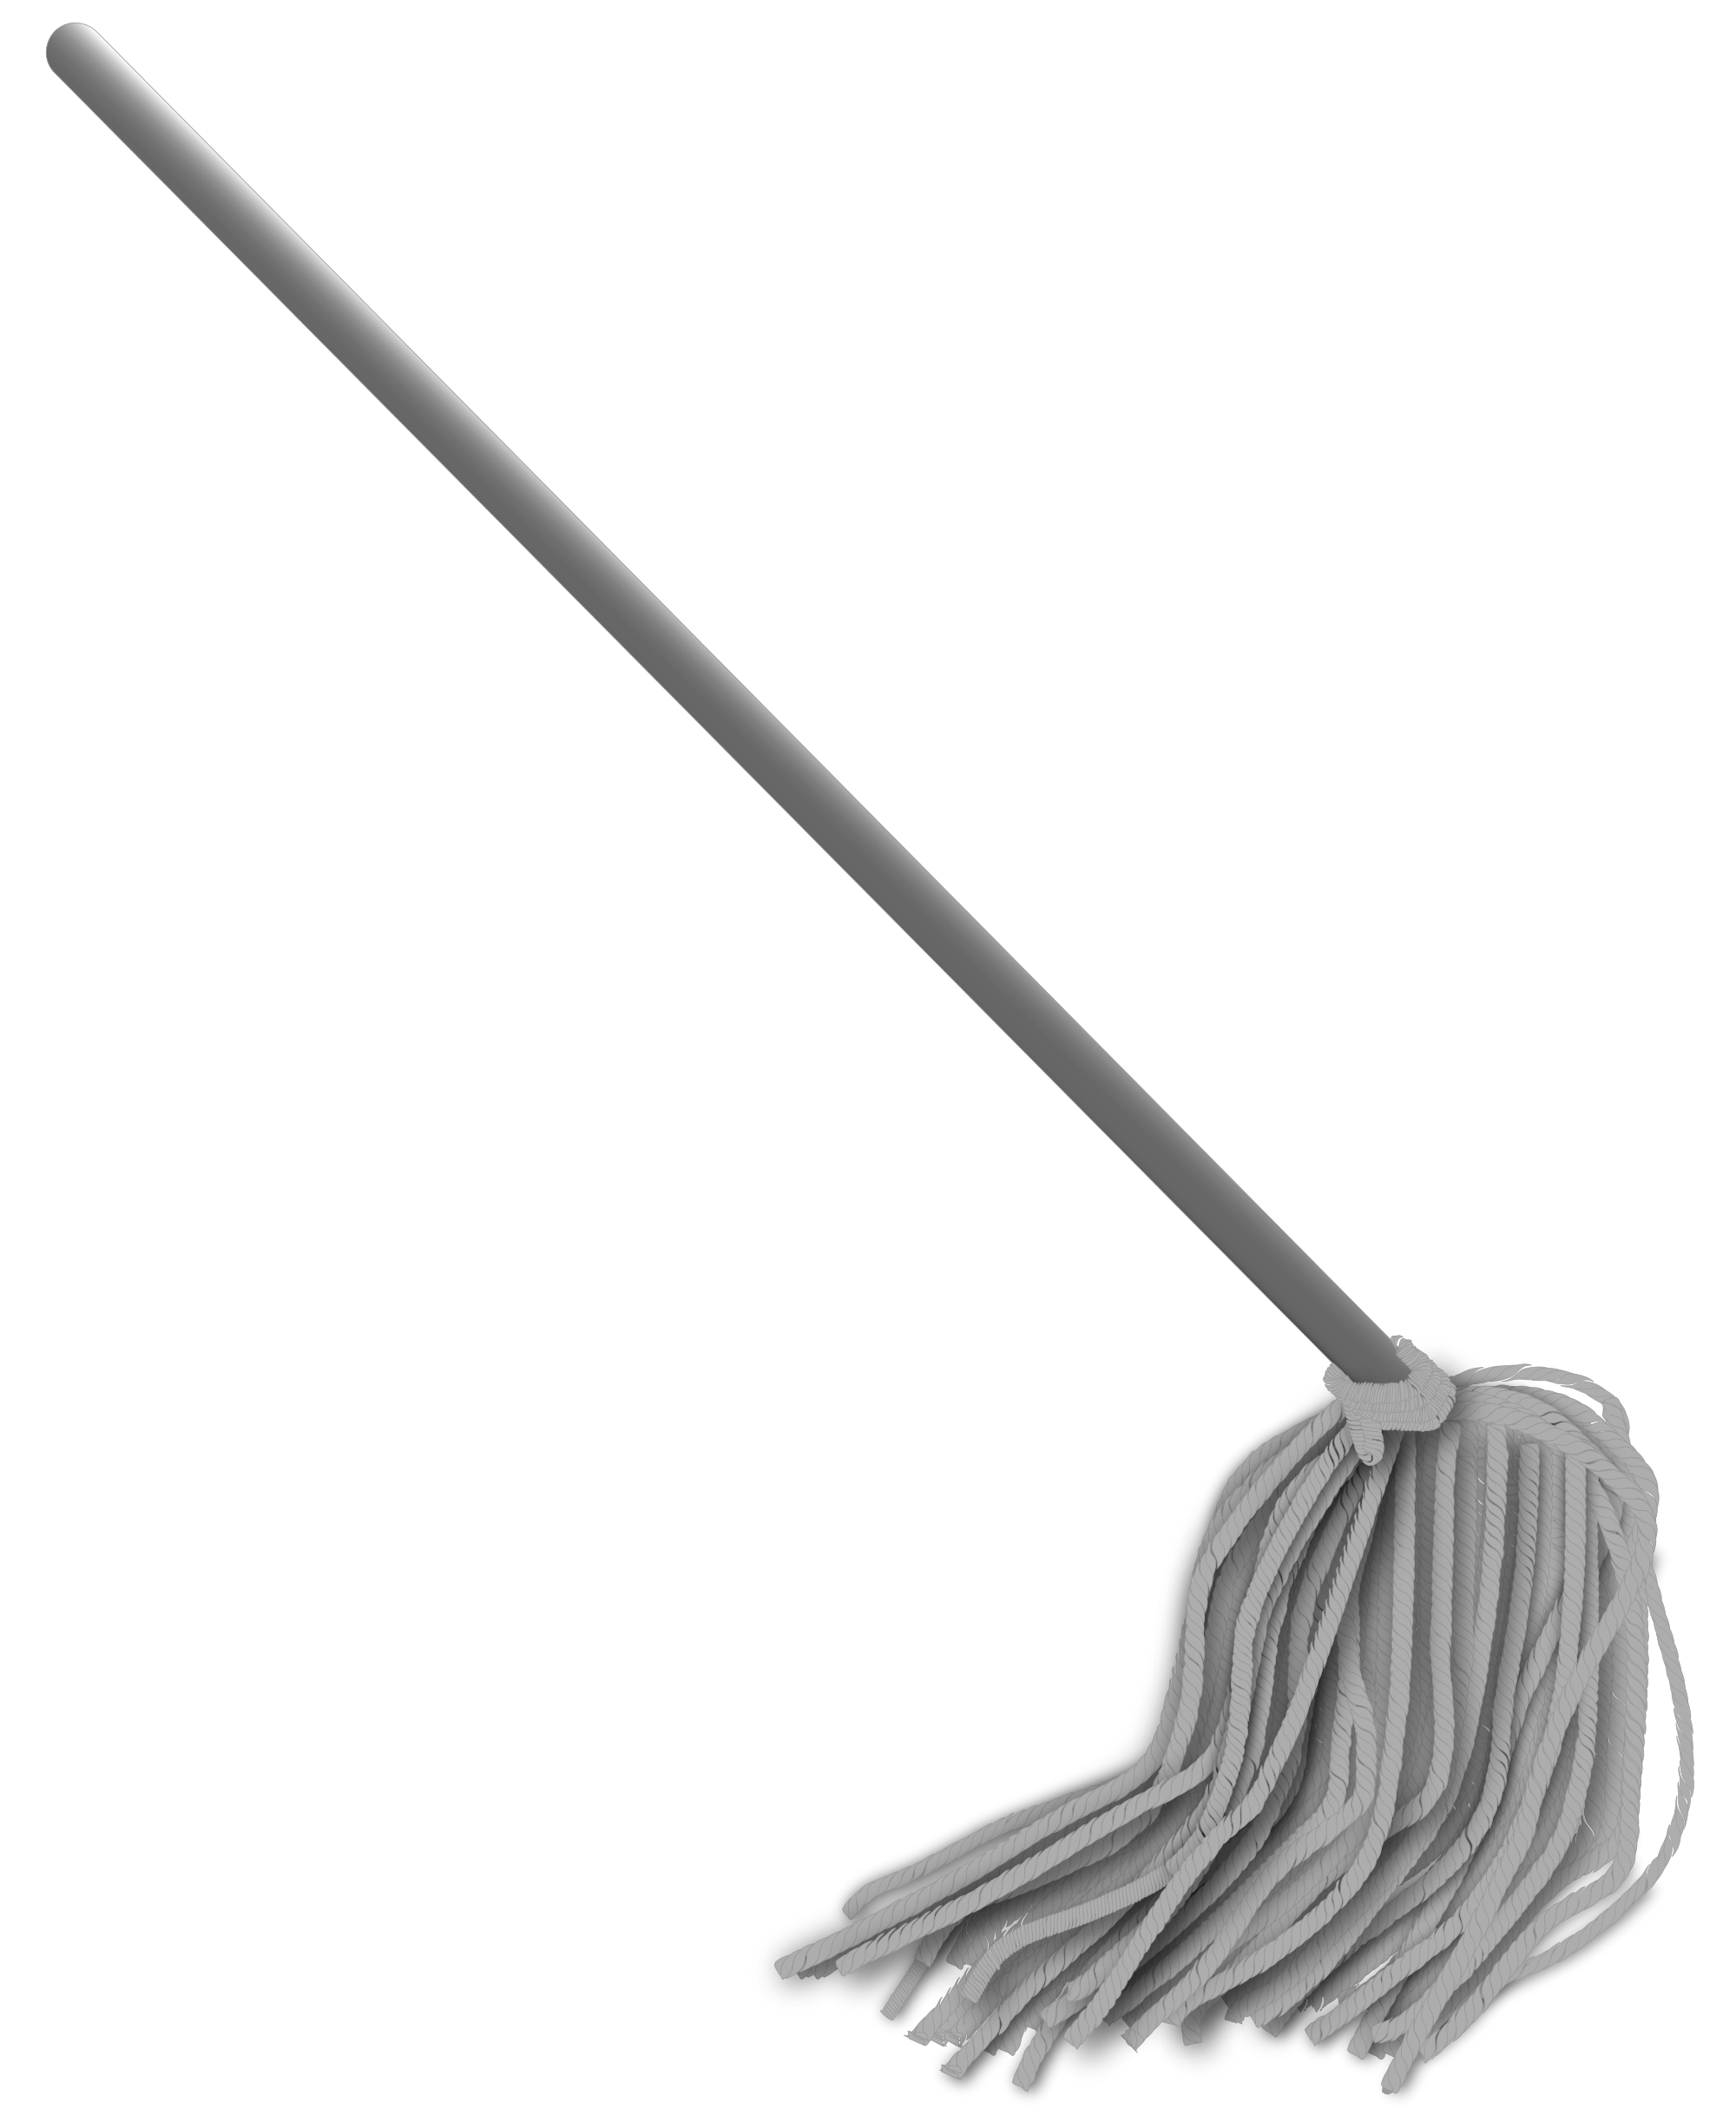 svg library Mop clipart. File svg wikimedia commons.